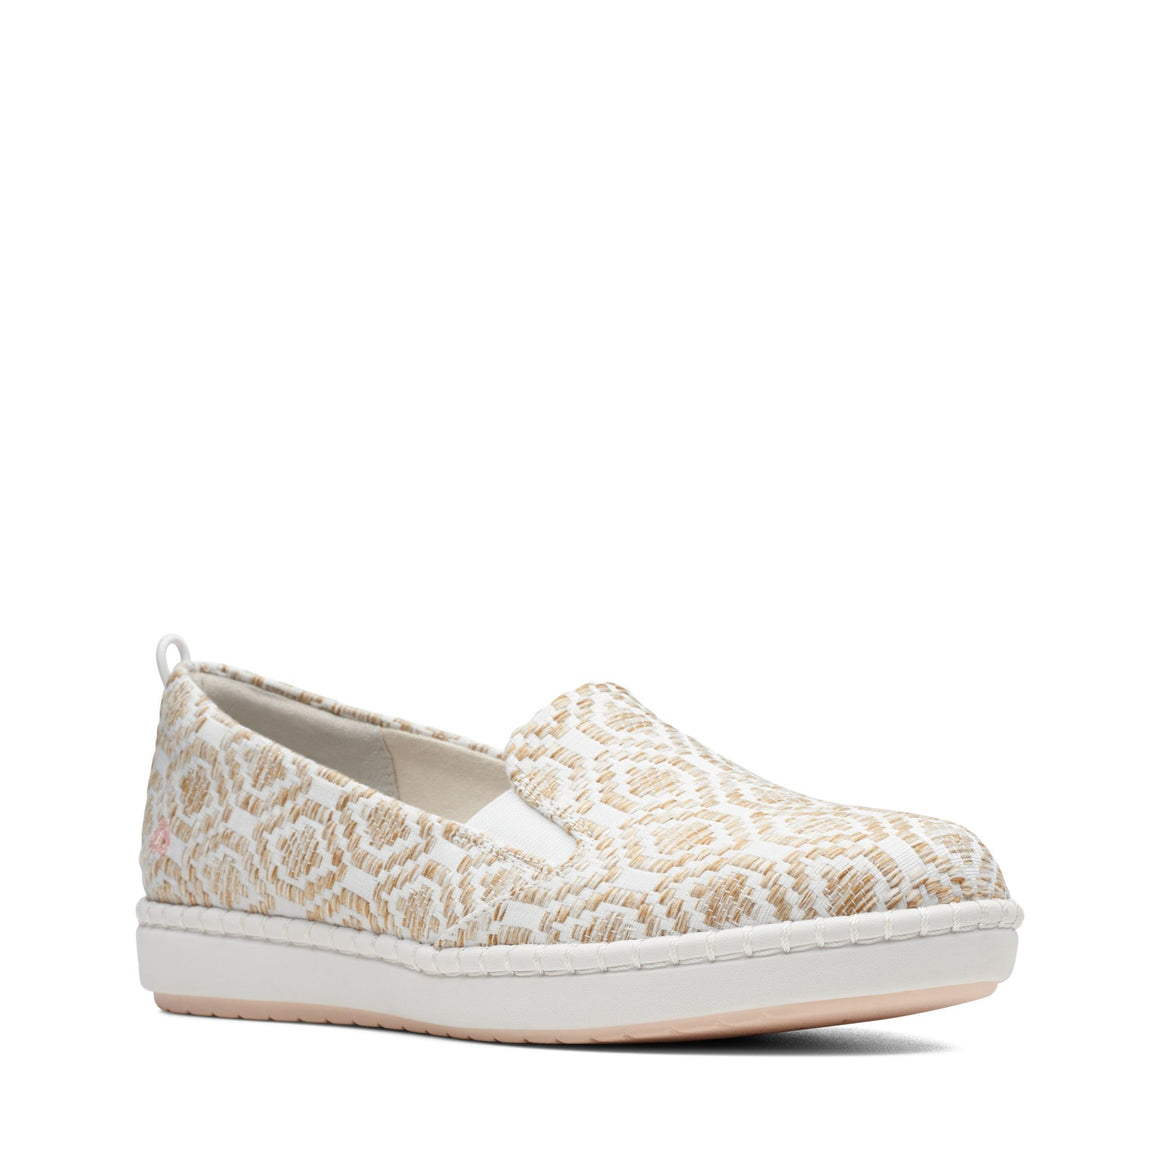 Clarks Women's Step Glow Slip On - Natural - ShoeShackOnline